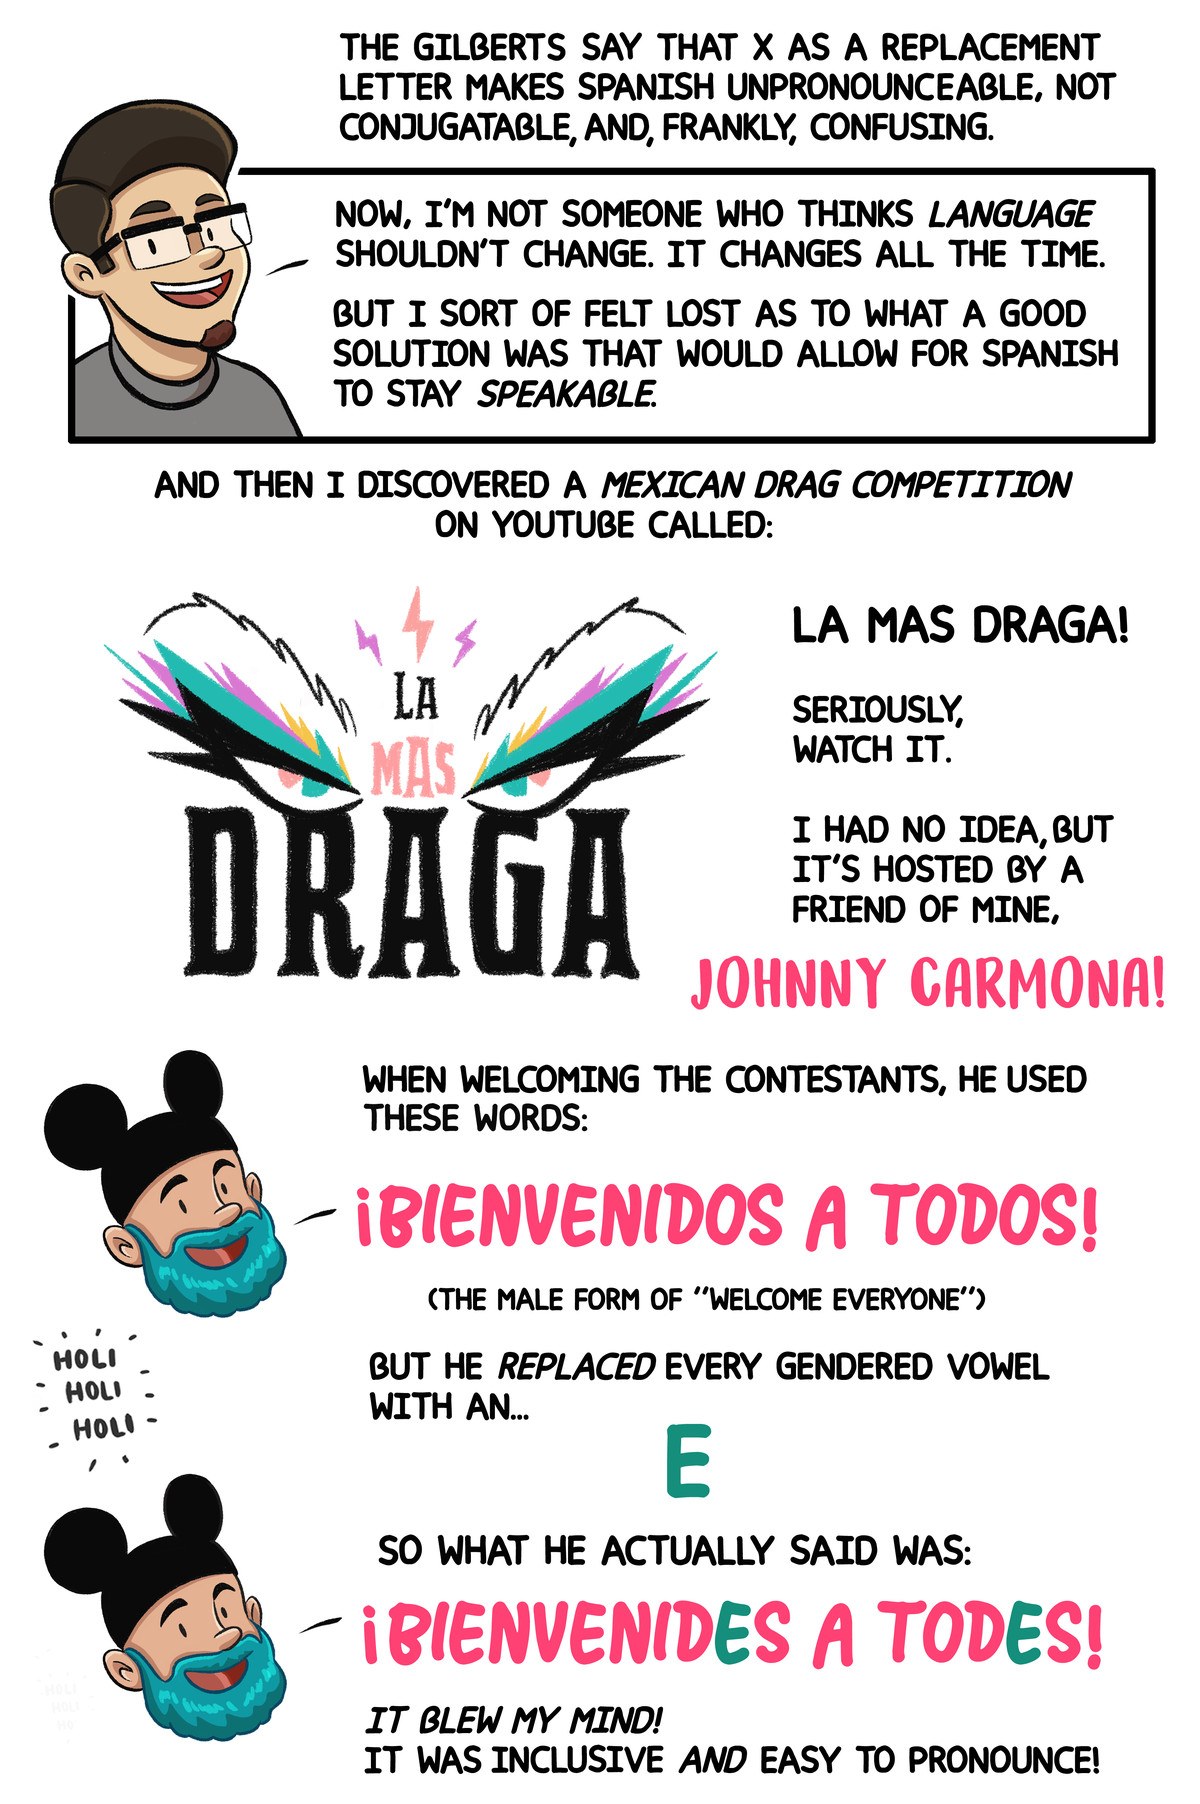 """... And then I discovered a Mexican drag competition on YouTube called Las Mas Draga! When welcoming the contestants, ... [the host] replaced every gendered vowel with an E."""" """"Bienvenides a todes!"""" It blew my mind! It was inclusive and easy to pronounce!"""